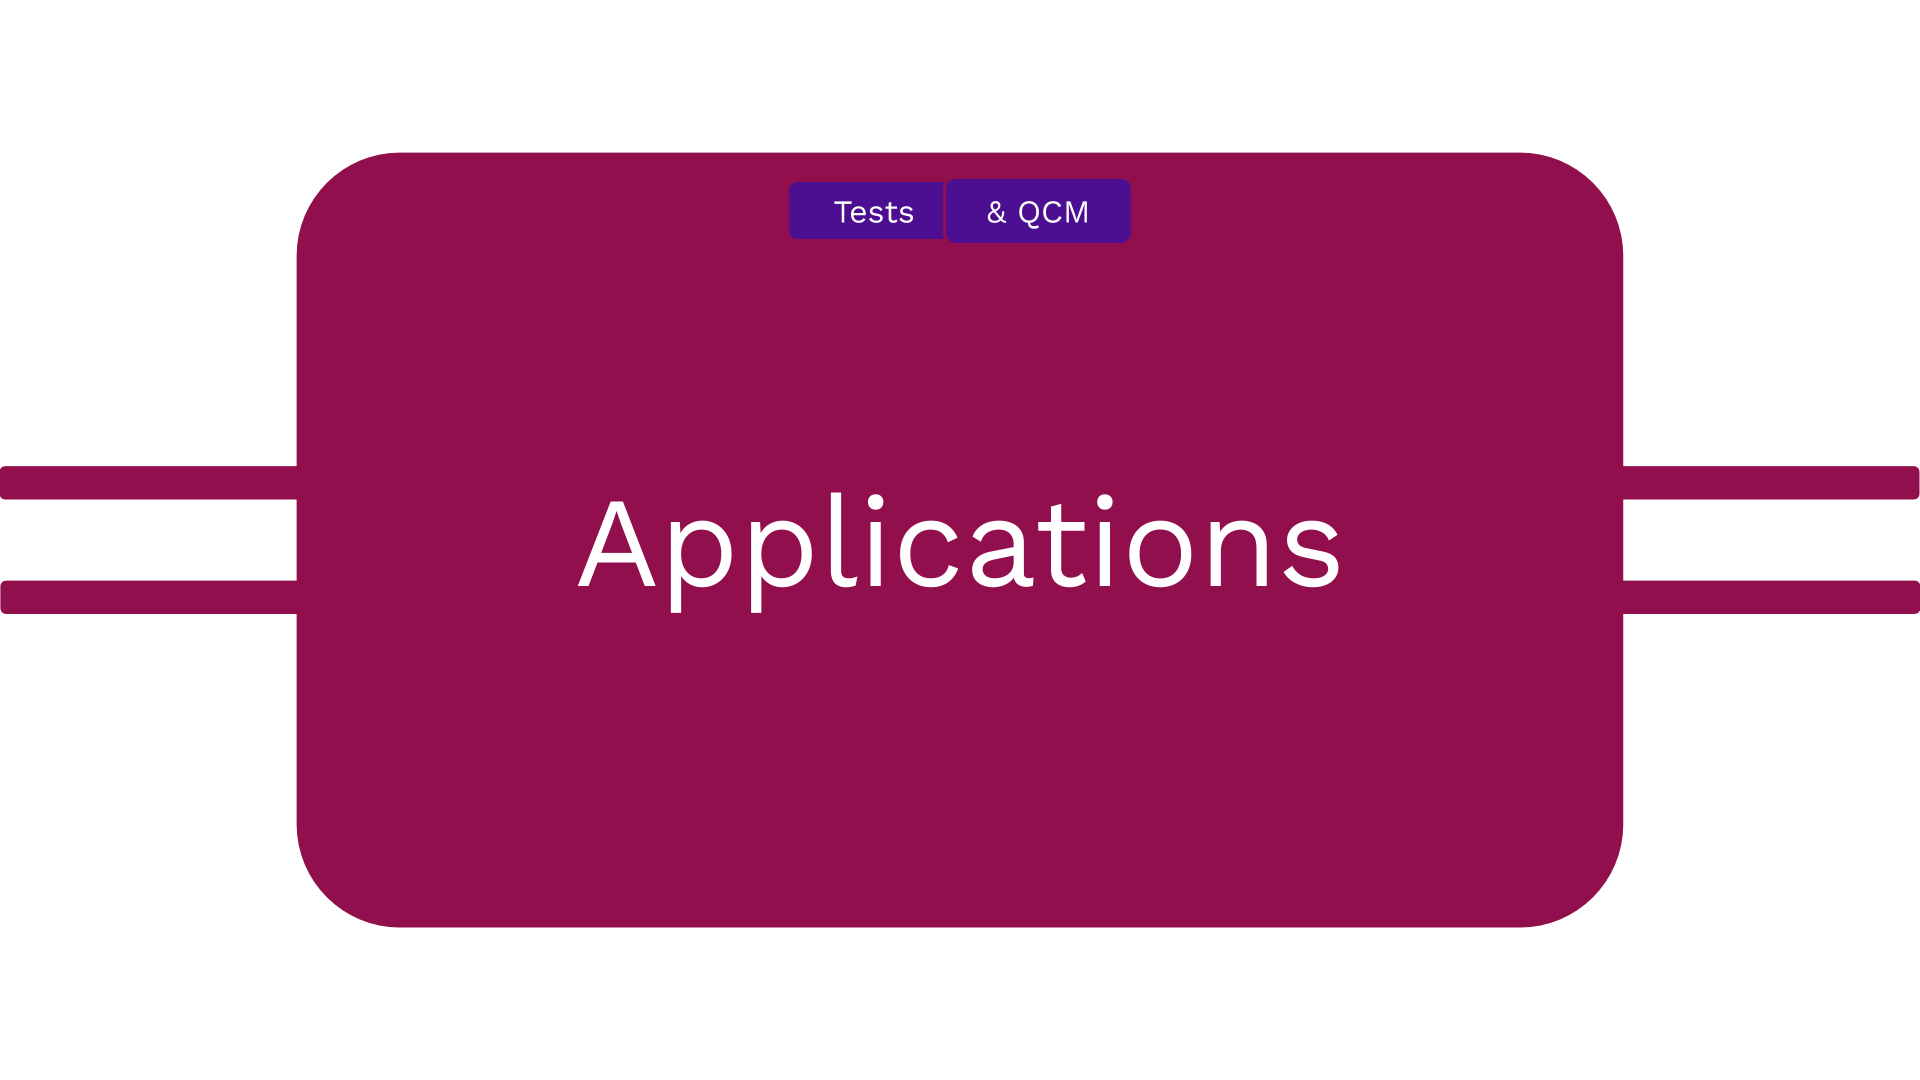 Applications de Tests et de QCM